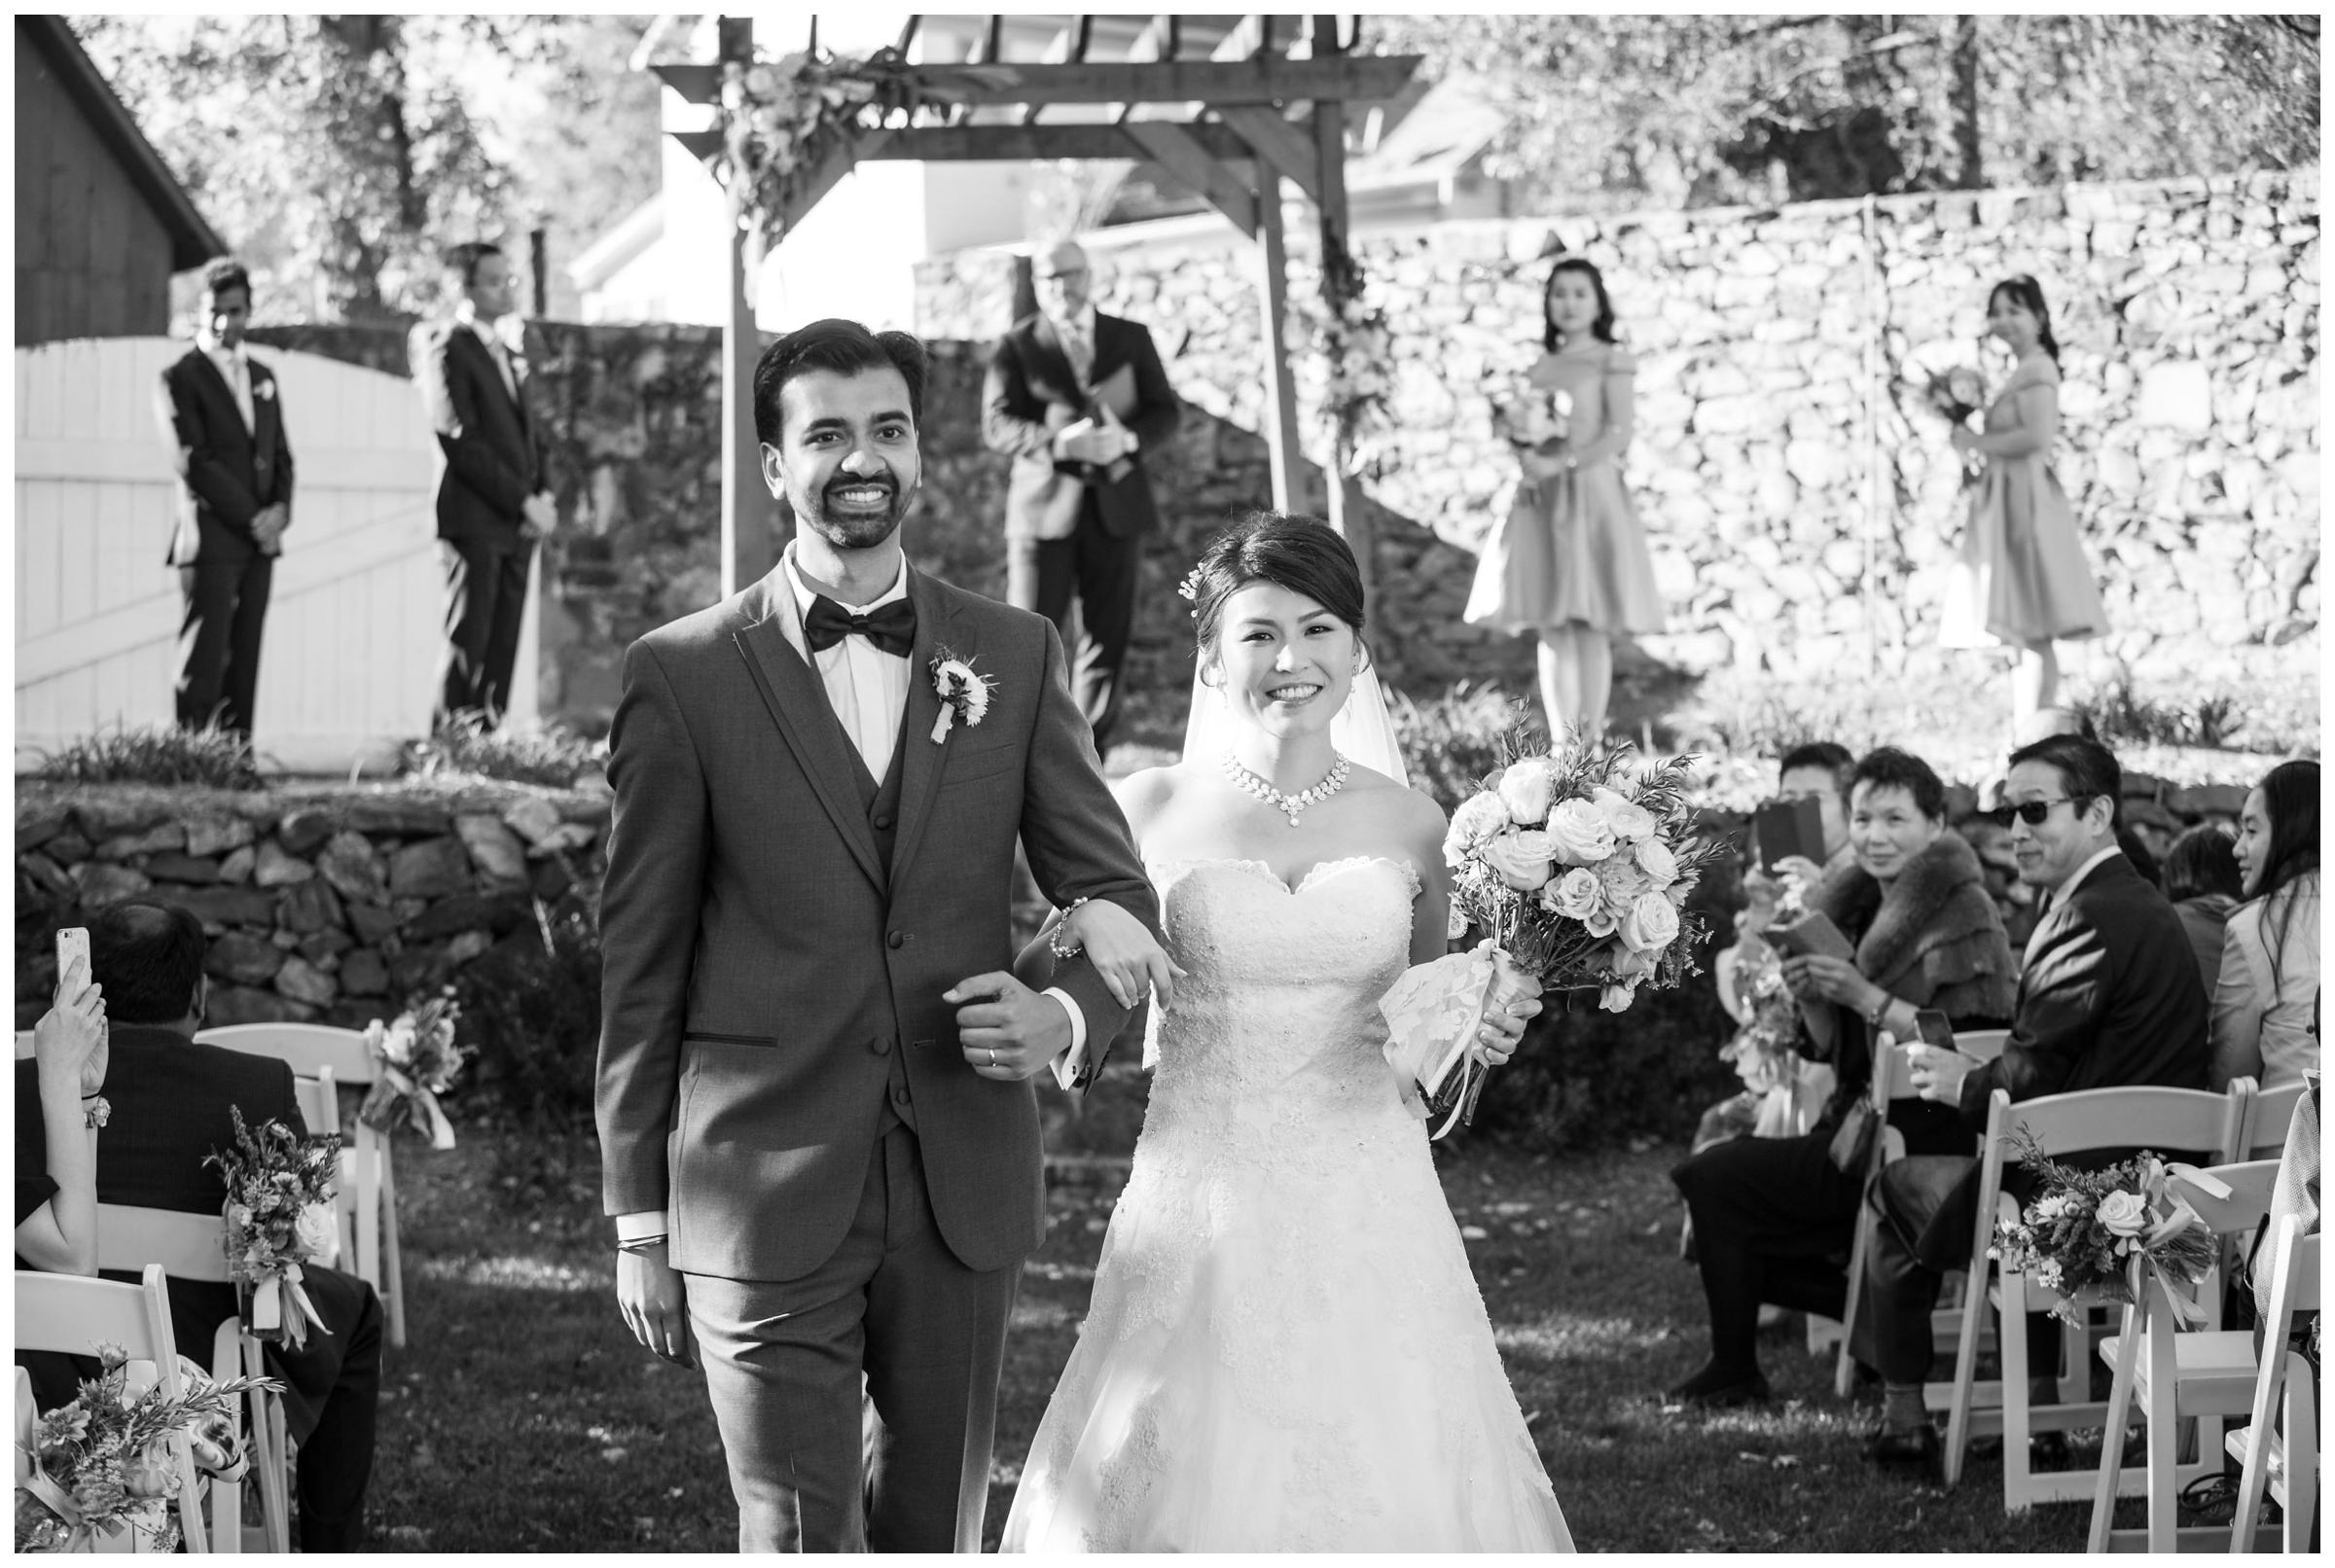 Recessional during rustic outdoor wedding ceremony.